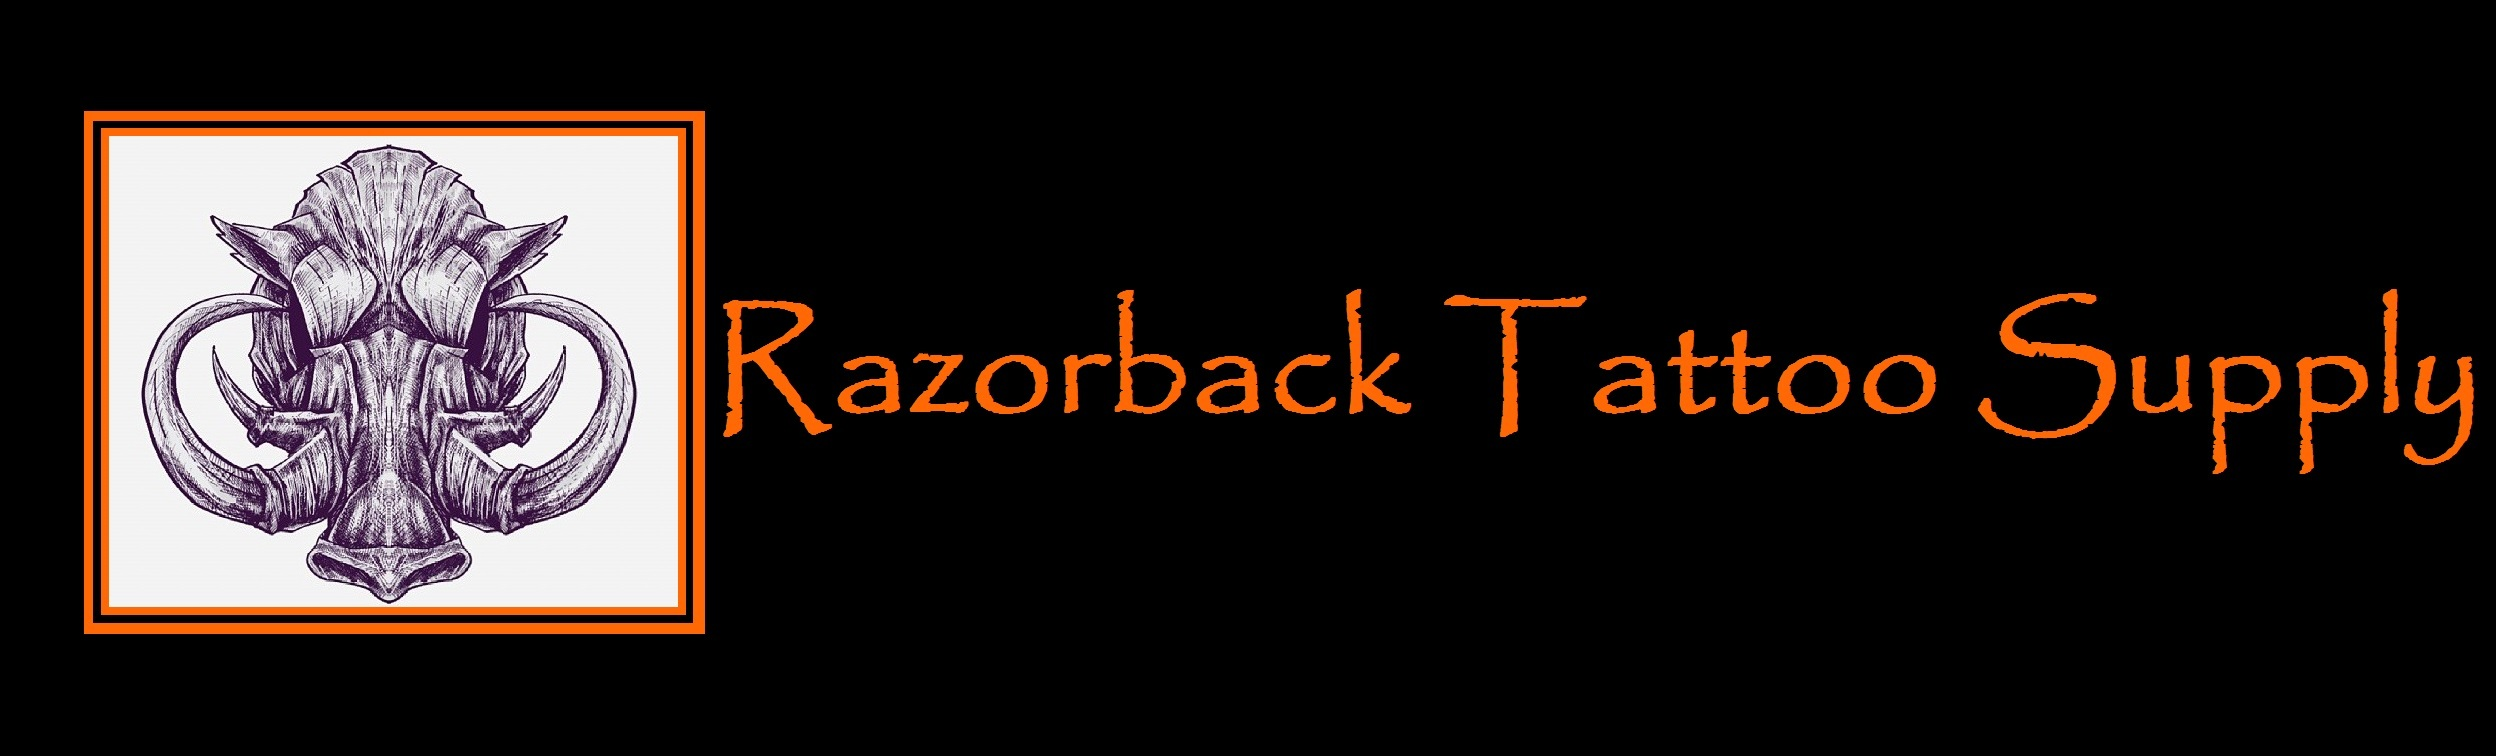 Razorback Tattoo Supply